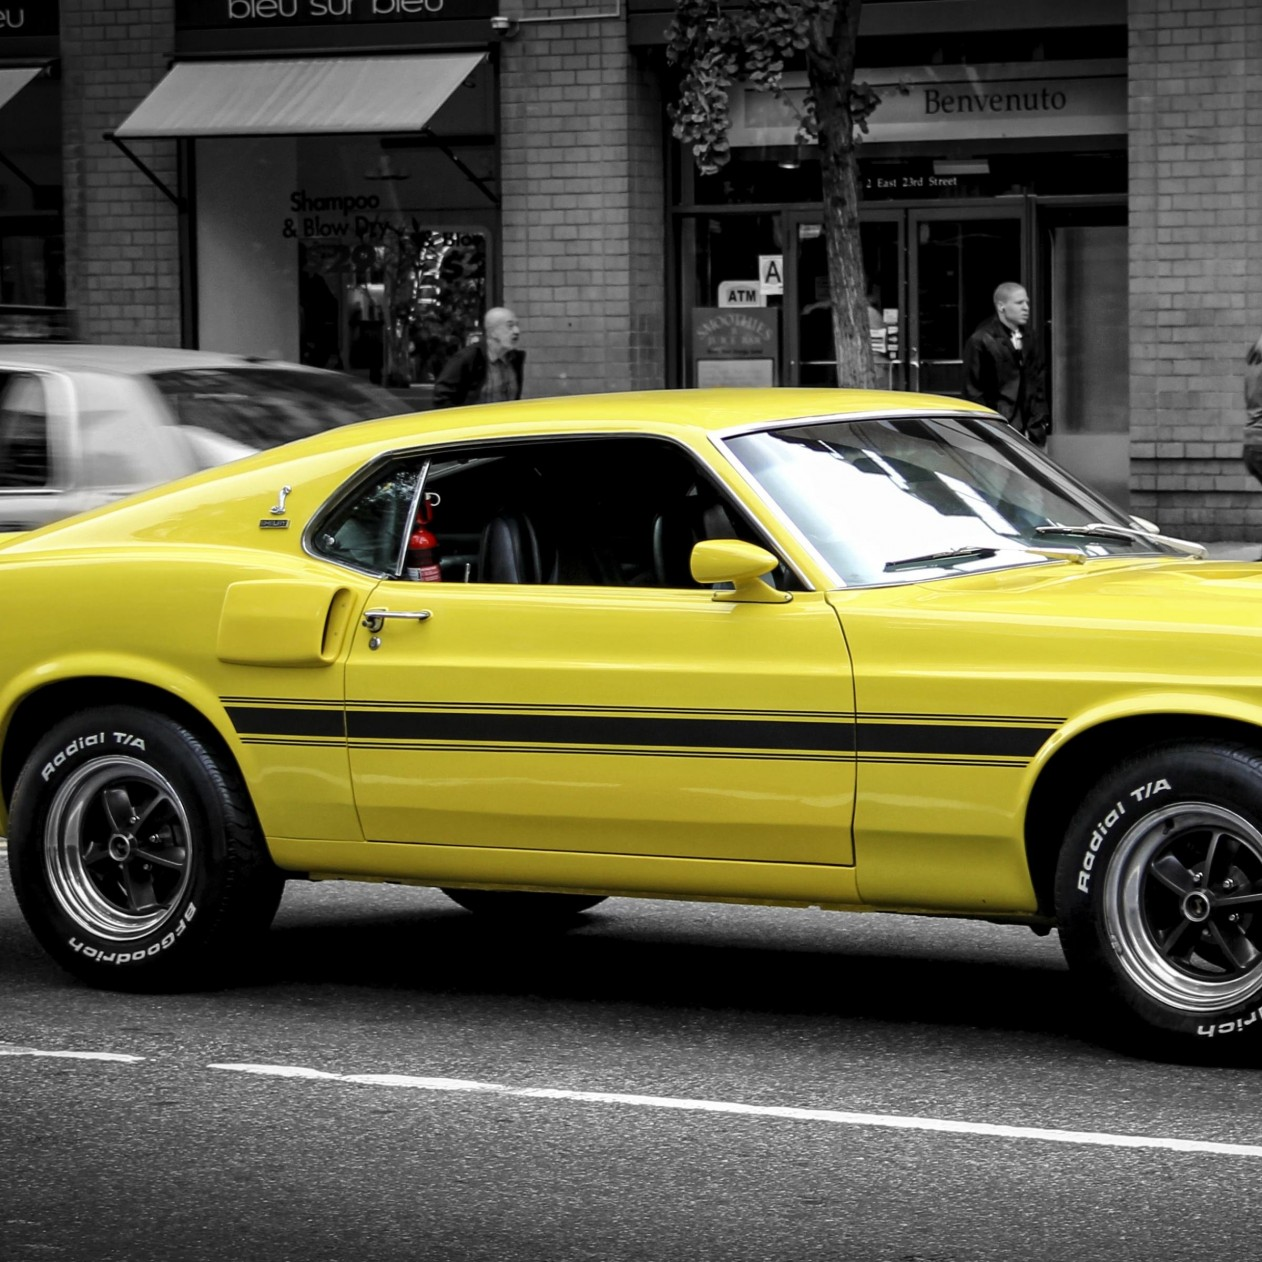 1969 Ford Mustang GT350 Wallpaper for Apple iPad mini